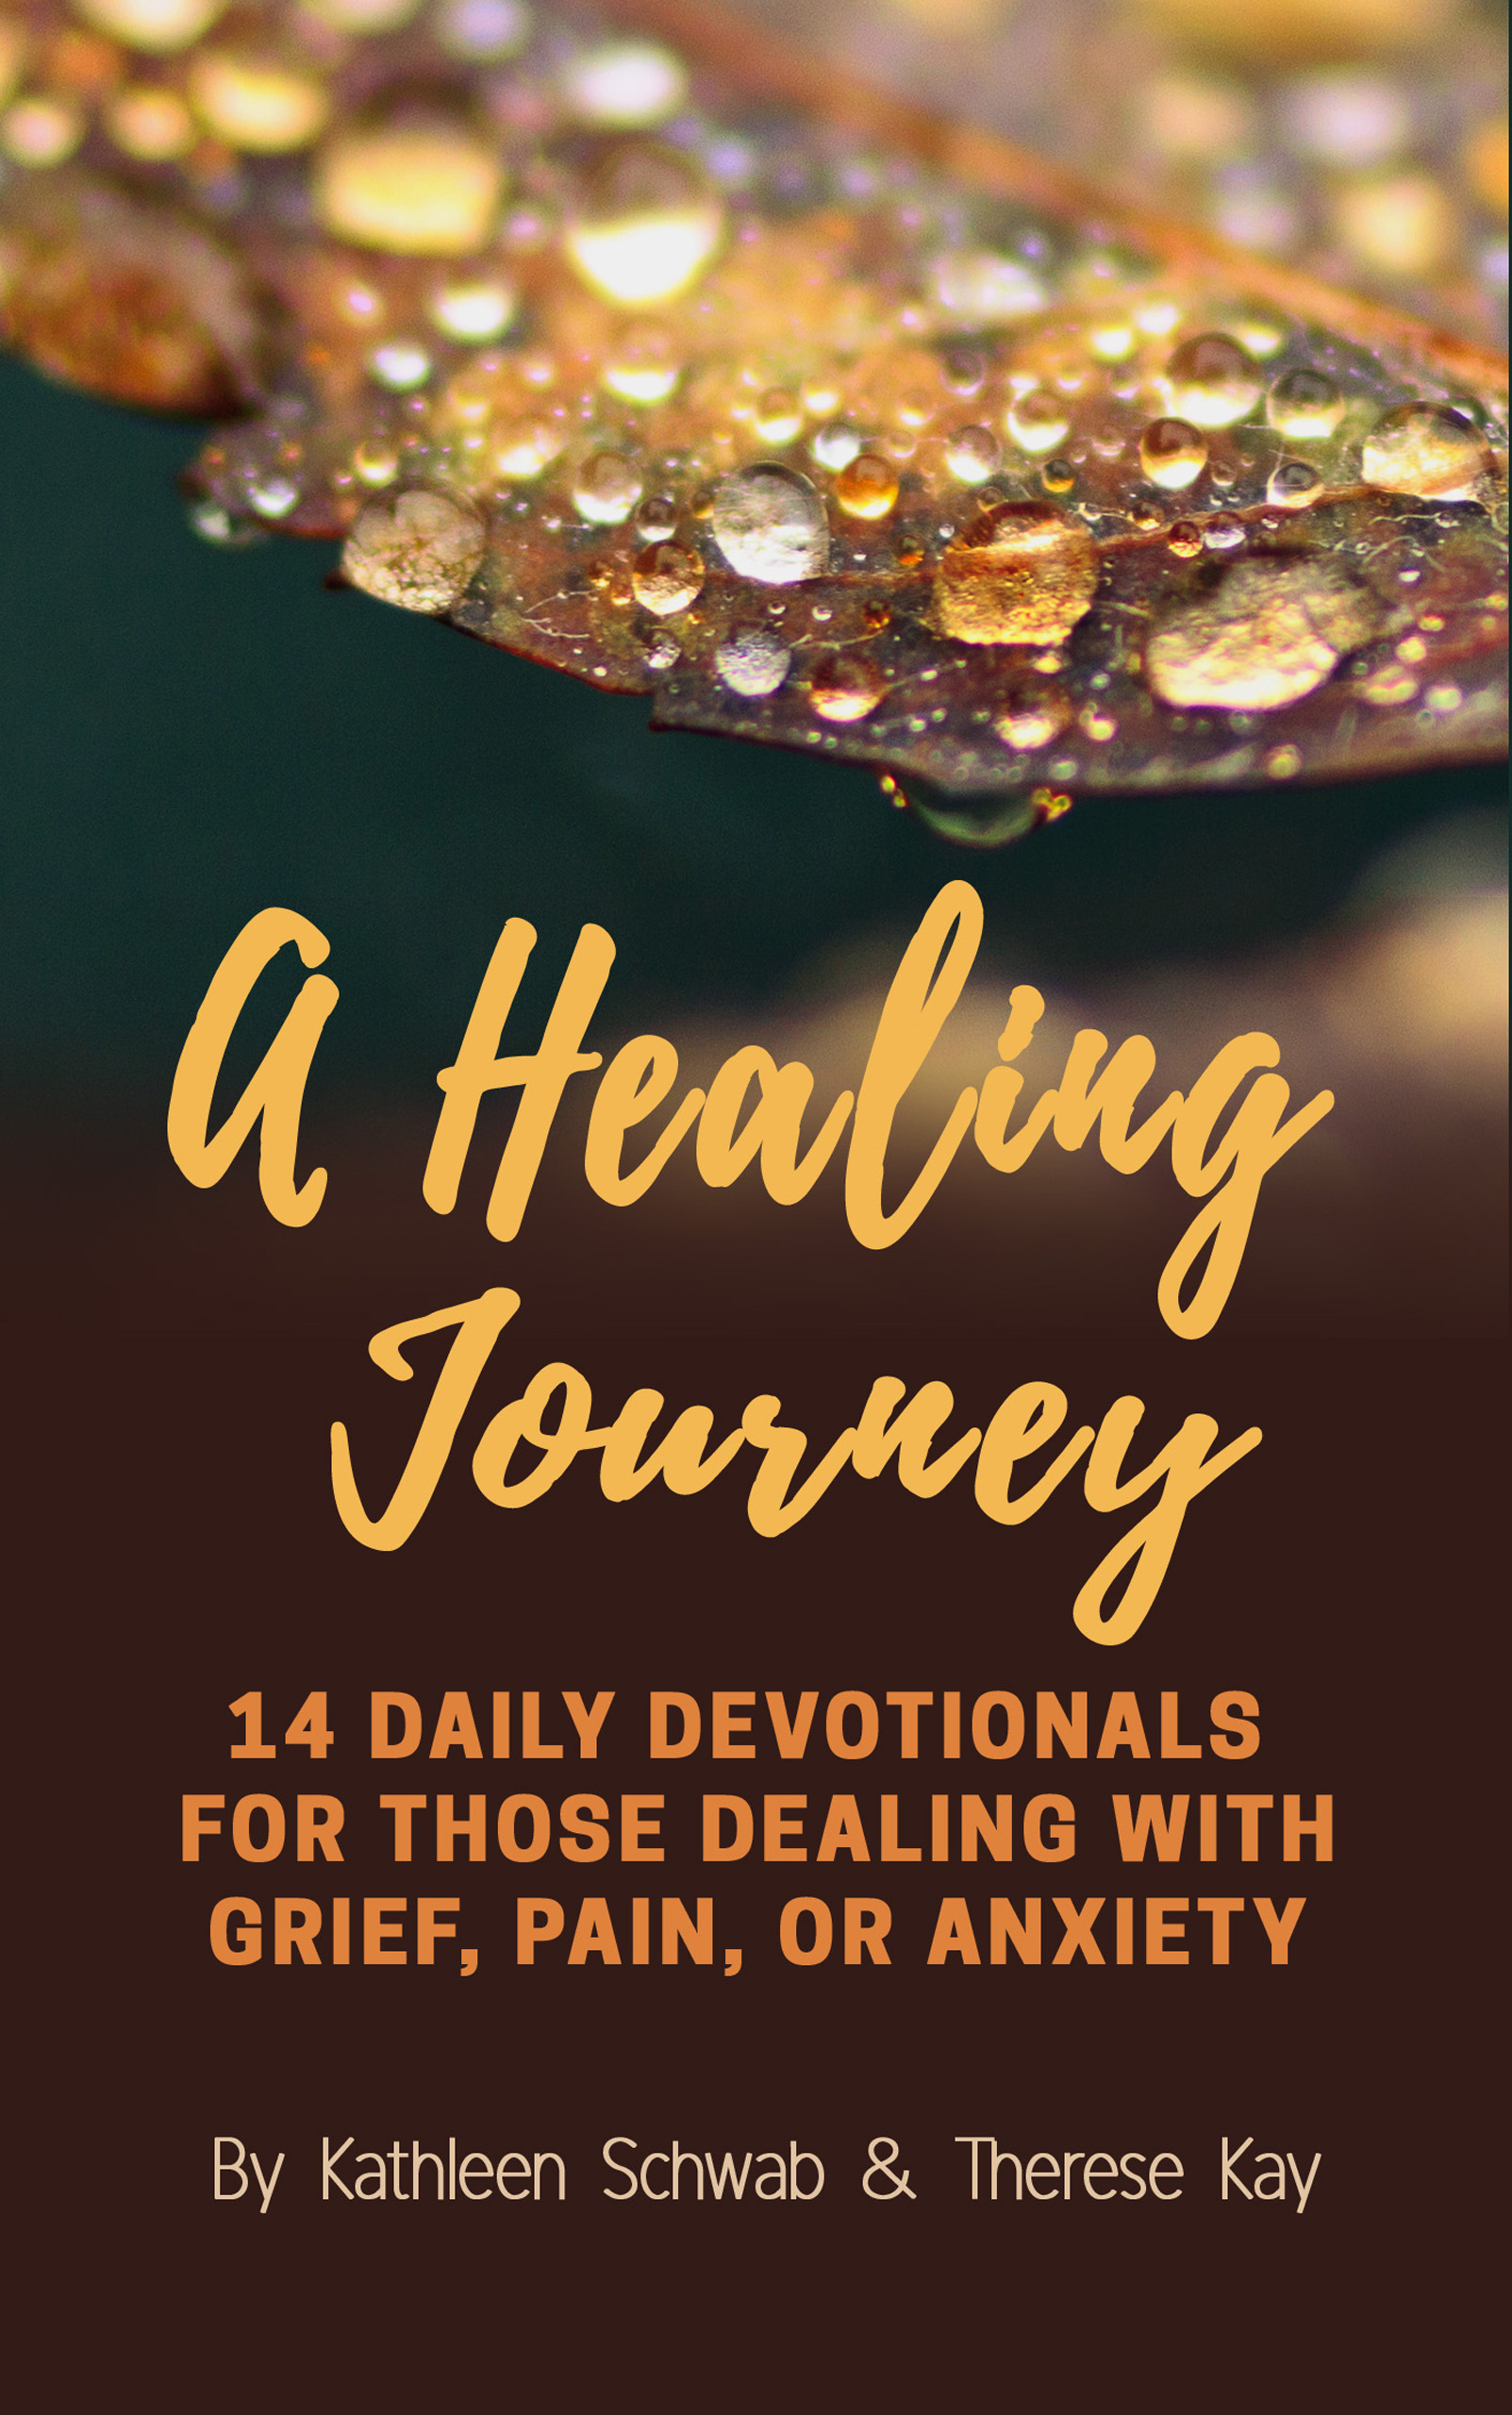 Check out :    A Healing Journey: 14 Daily Devotionals for Those Dealing with Grief, Pain, Or Anxiety      Only $0.99 on Amazon!